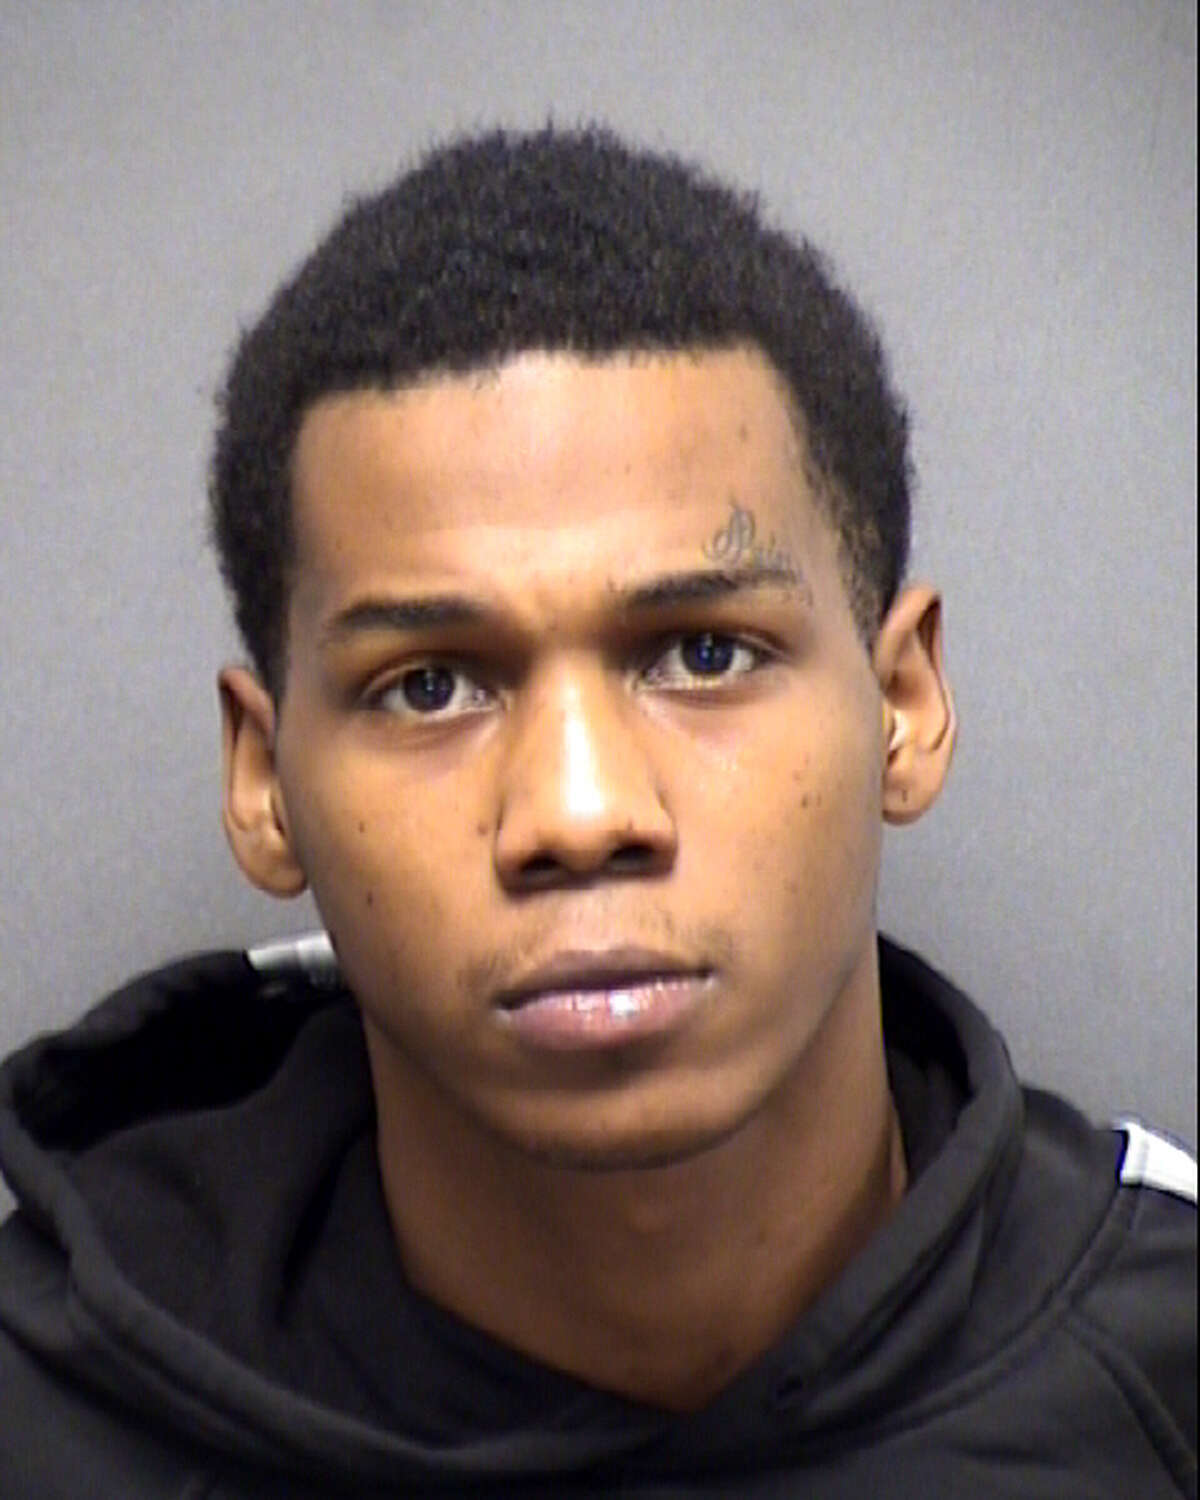 D'Morea Keys, 22, was charged with capital murder in the death of Donita Phillips.